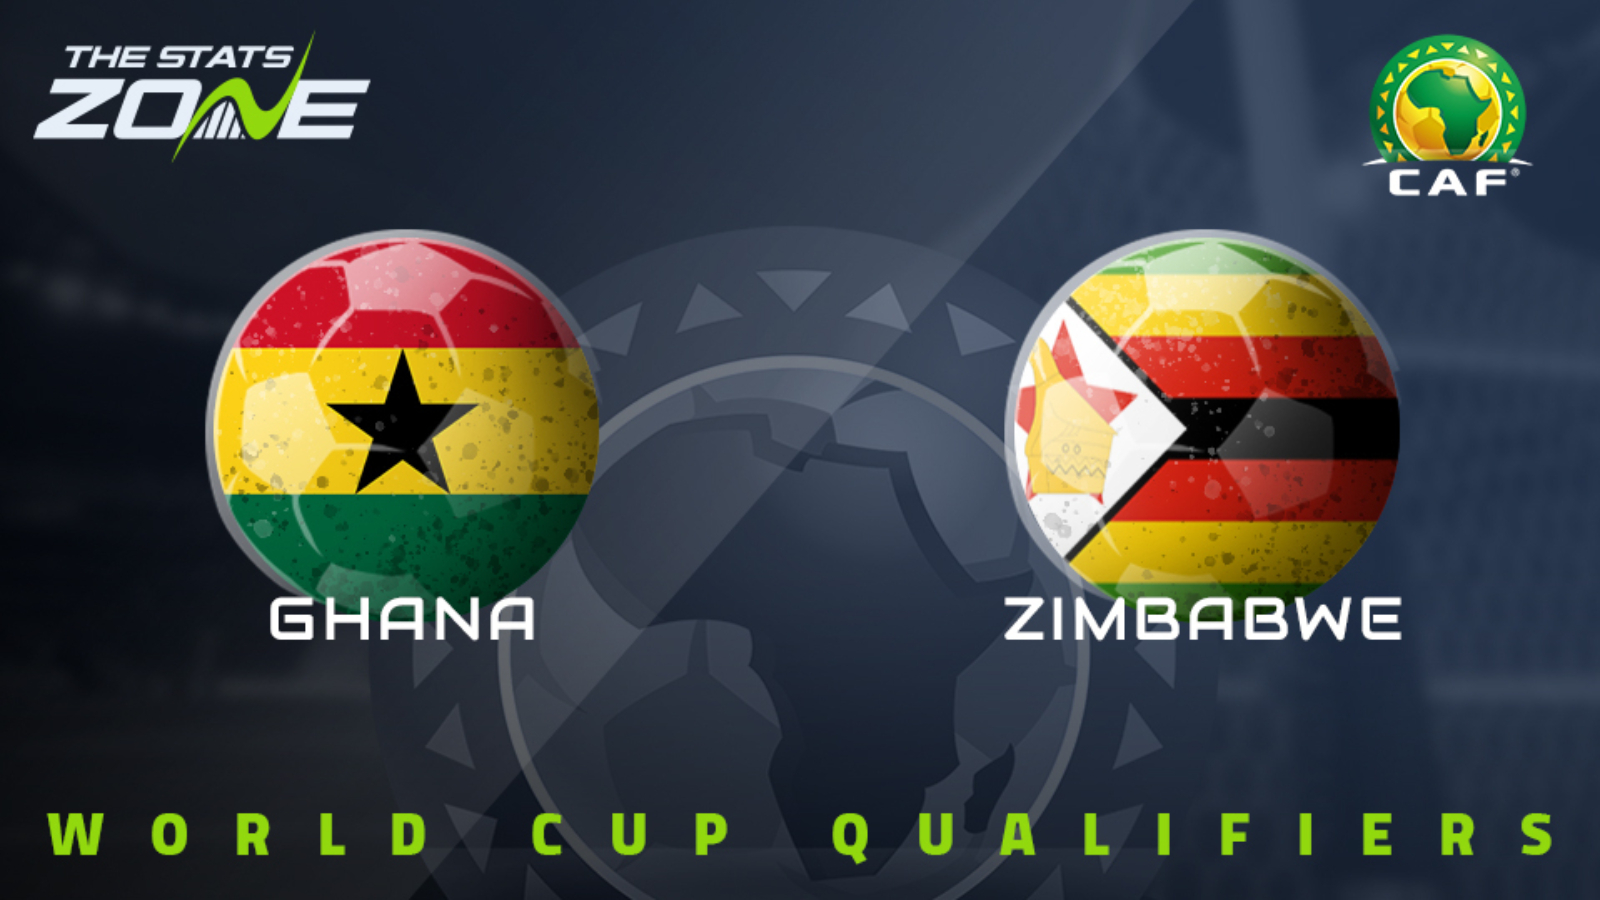 Ghana vs Zimbabwe CAF African World Cup Qualifiers